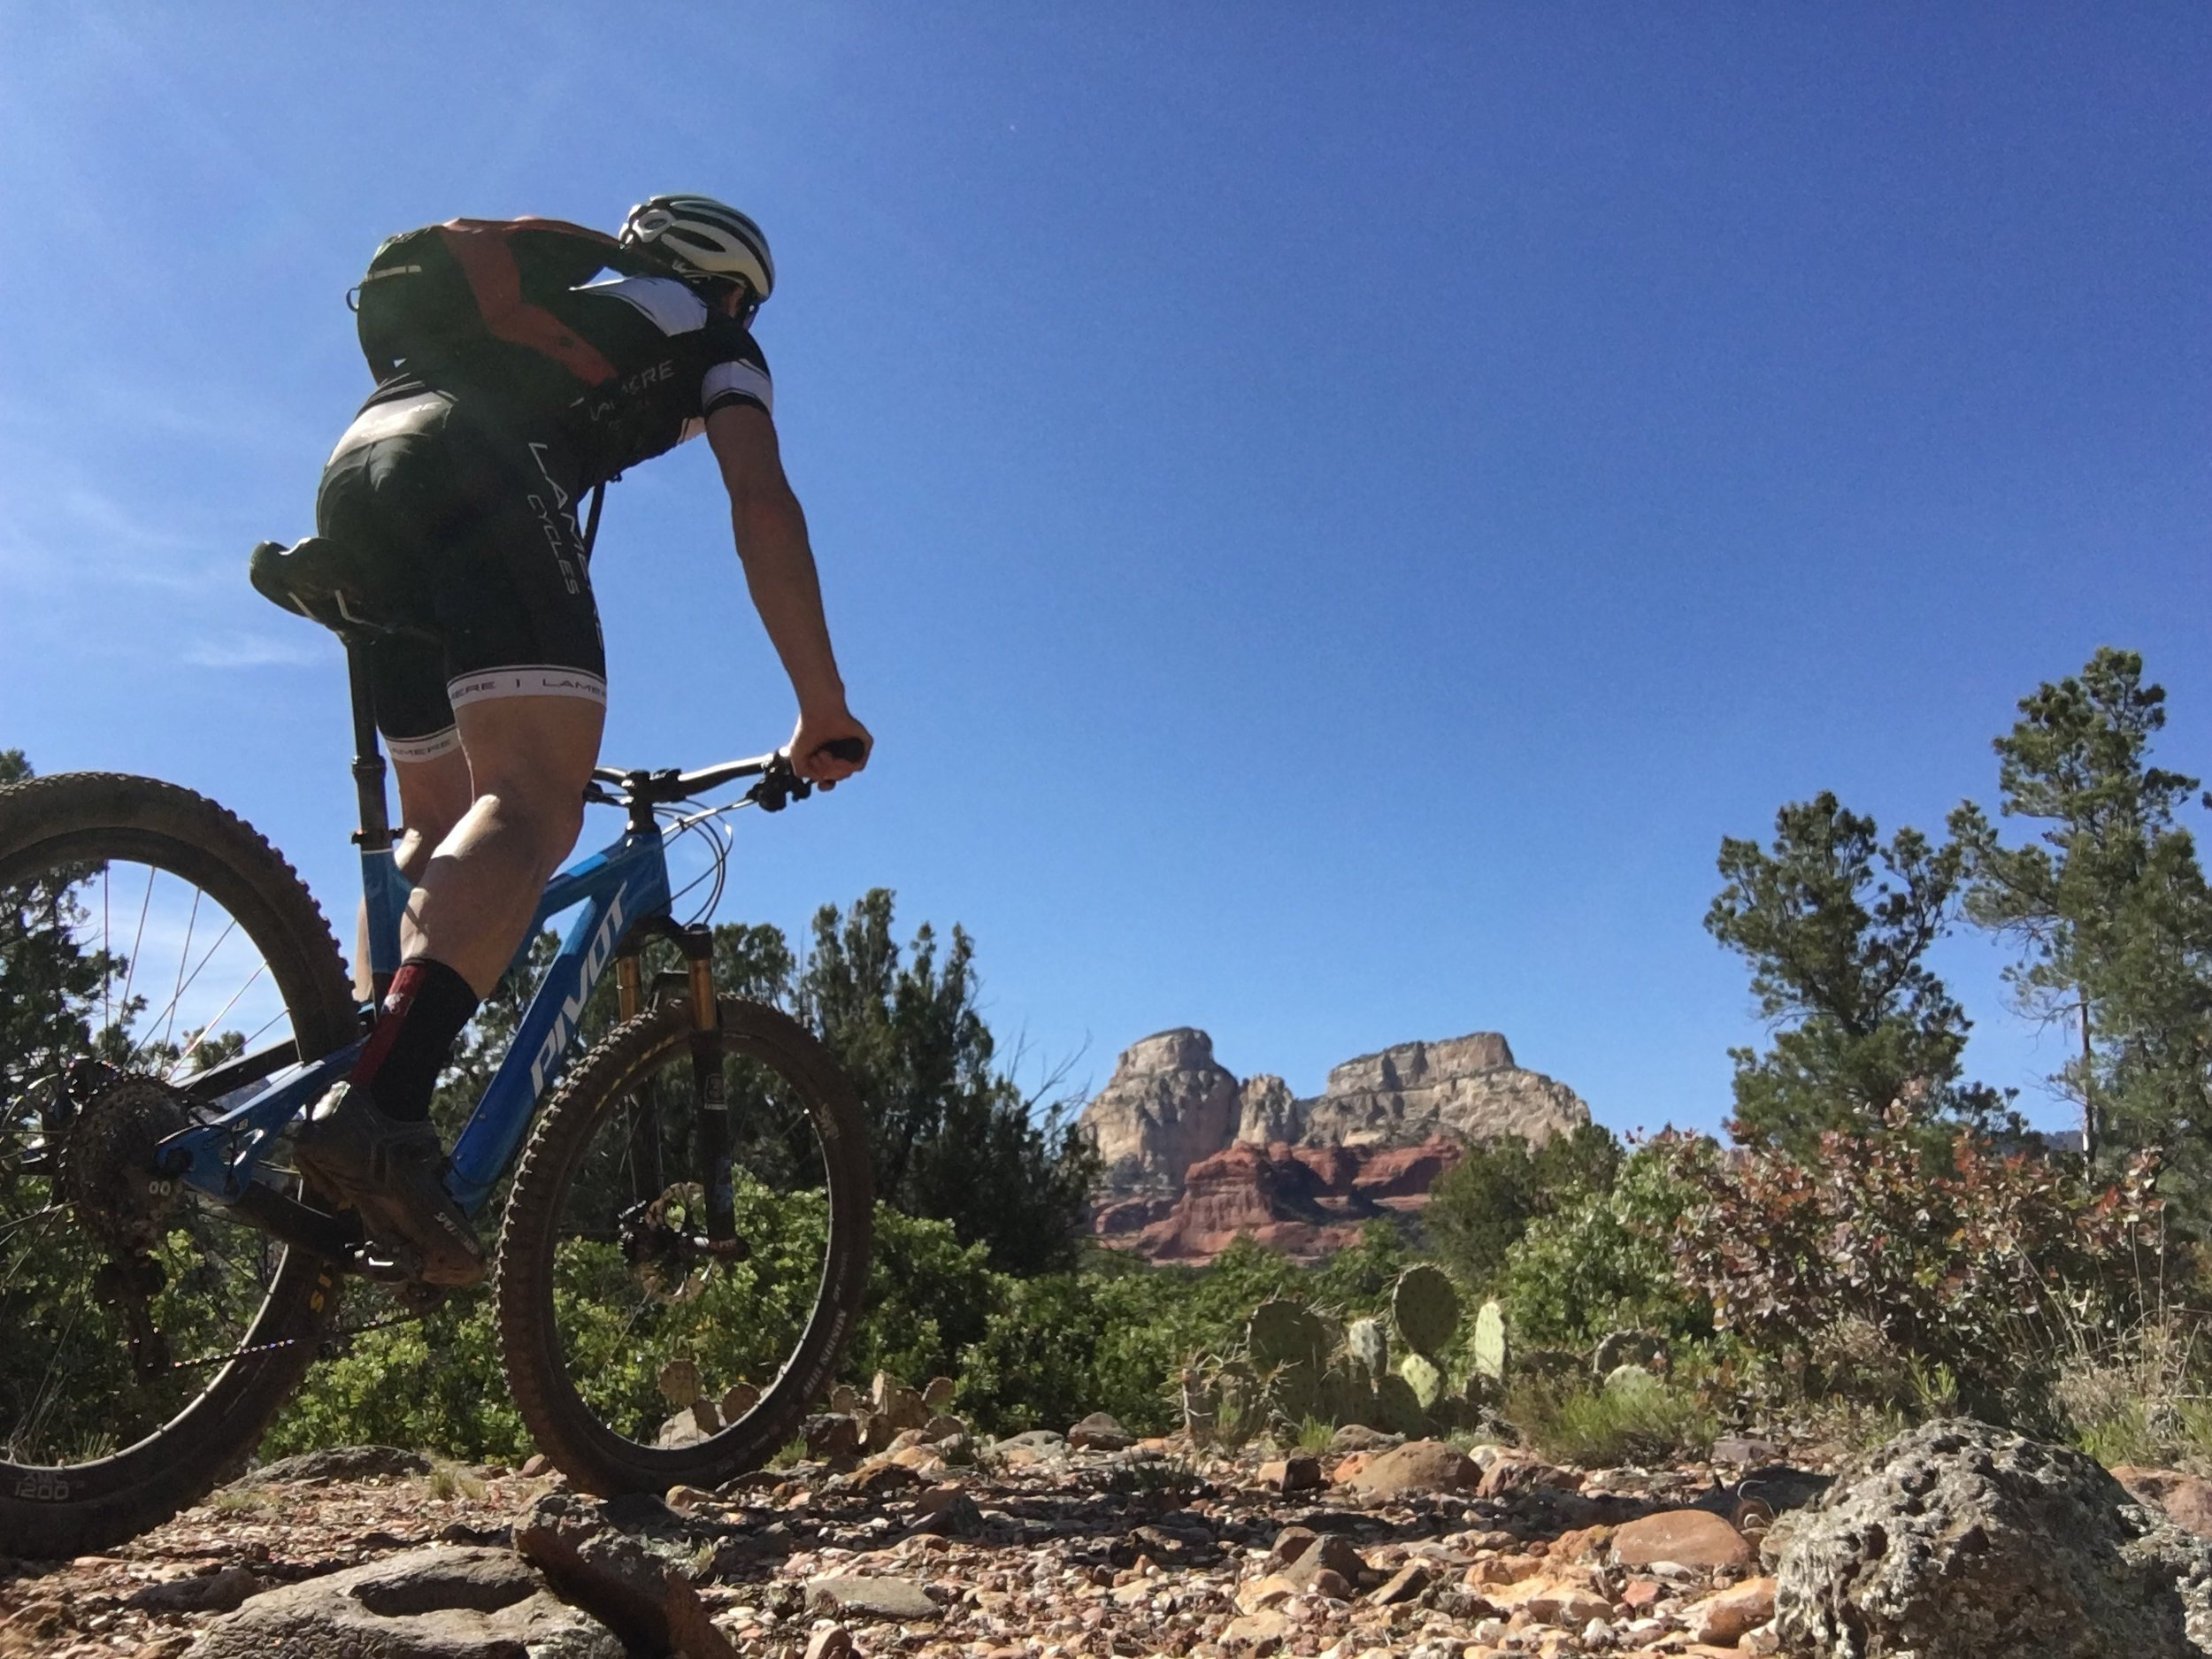 SPRING BREAK IN SEDONA: MARCH 24th - APRIL 1st, 2018  A DREAM TRIP FOR EVERY HIGH SCHOOL MOUNTAIN BIKER IN ONE THE PRIMER MOUNTAIN BIKE DESTINATIONS IN THE WORLD!